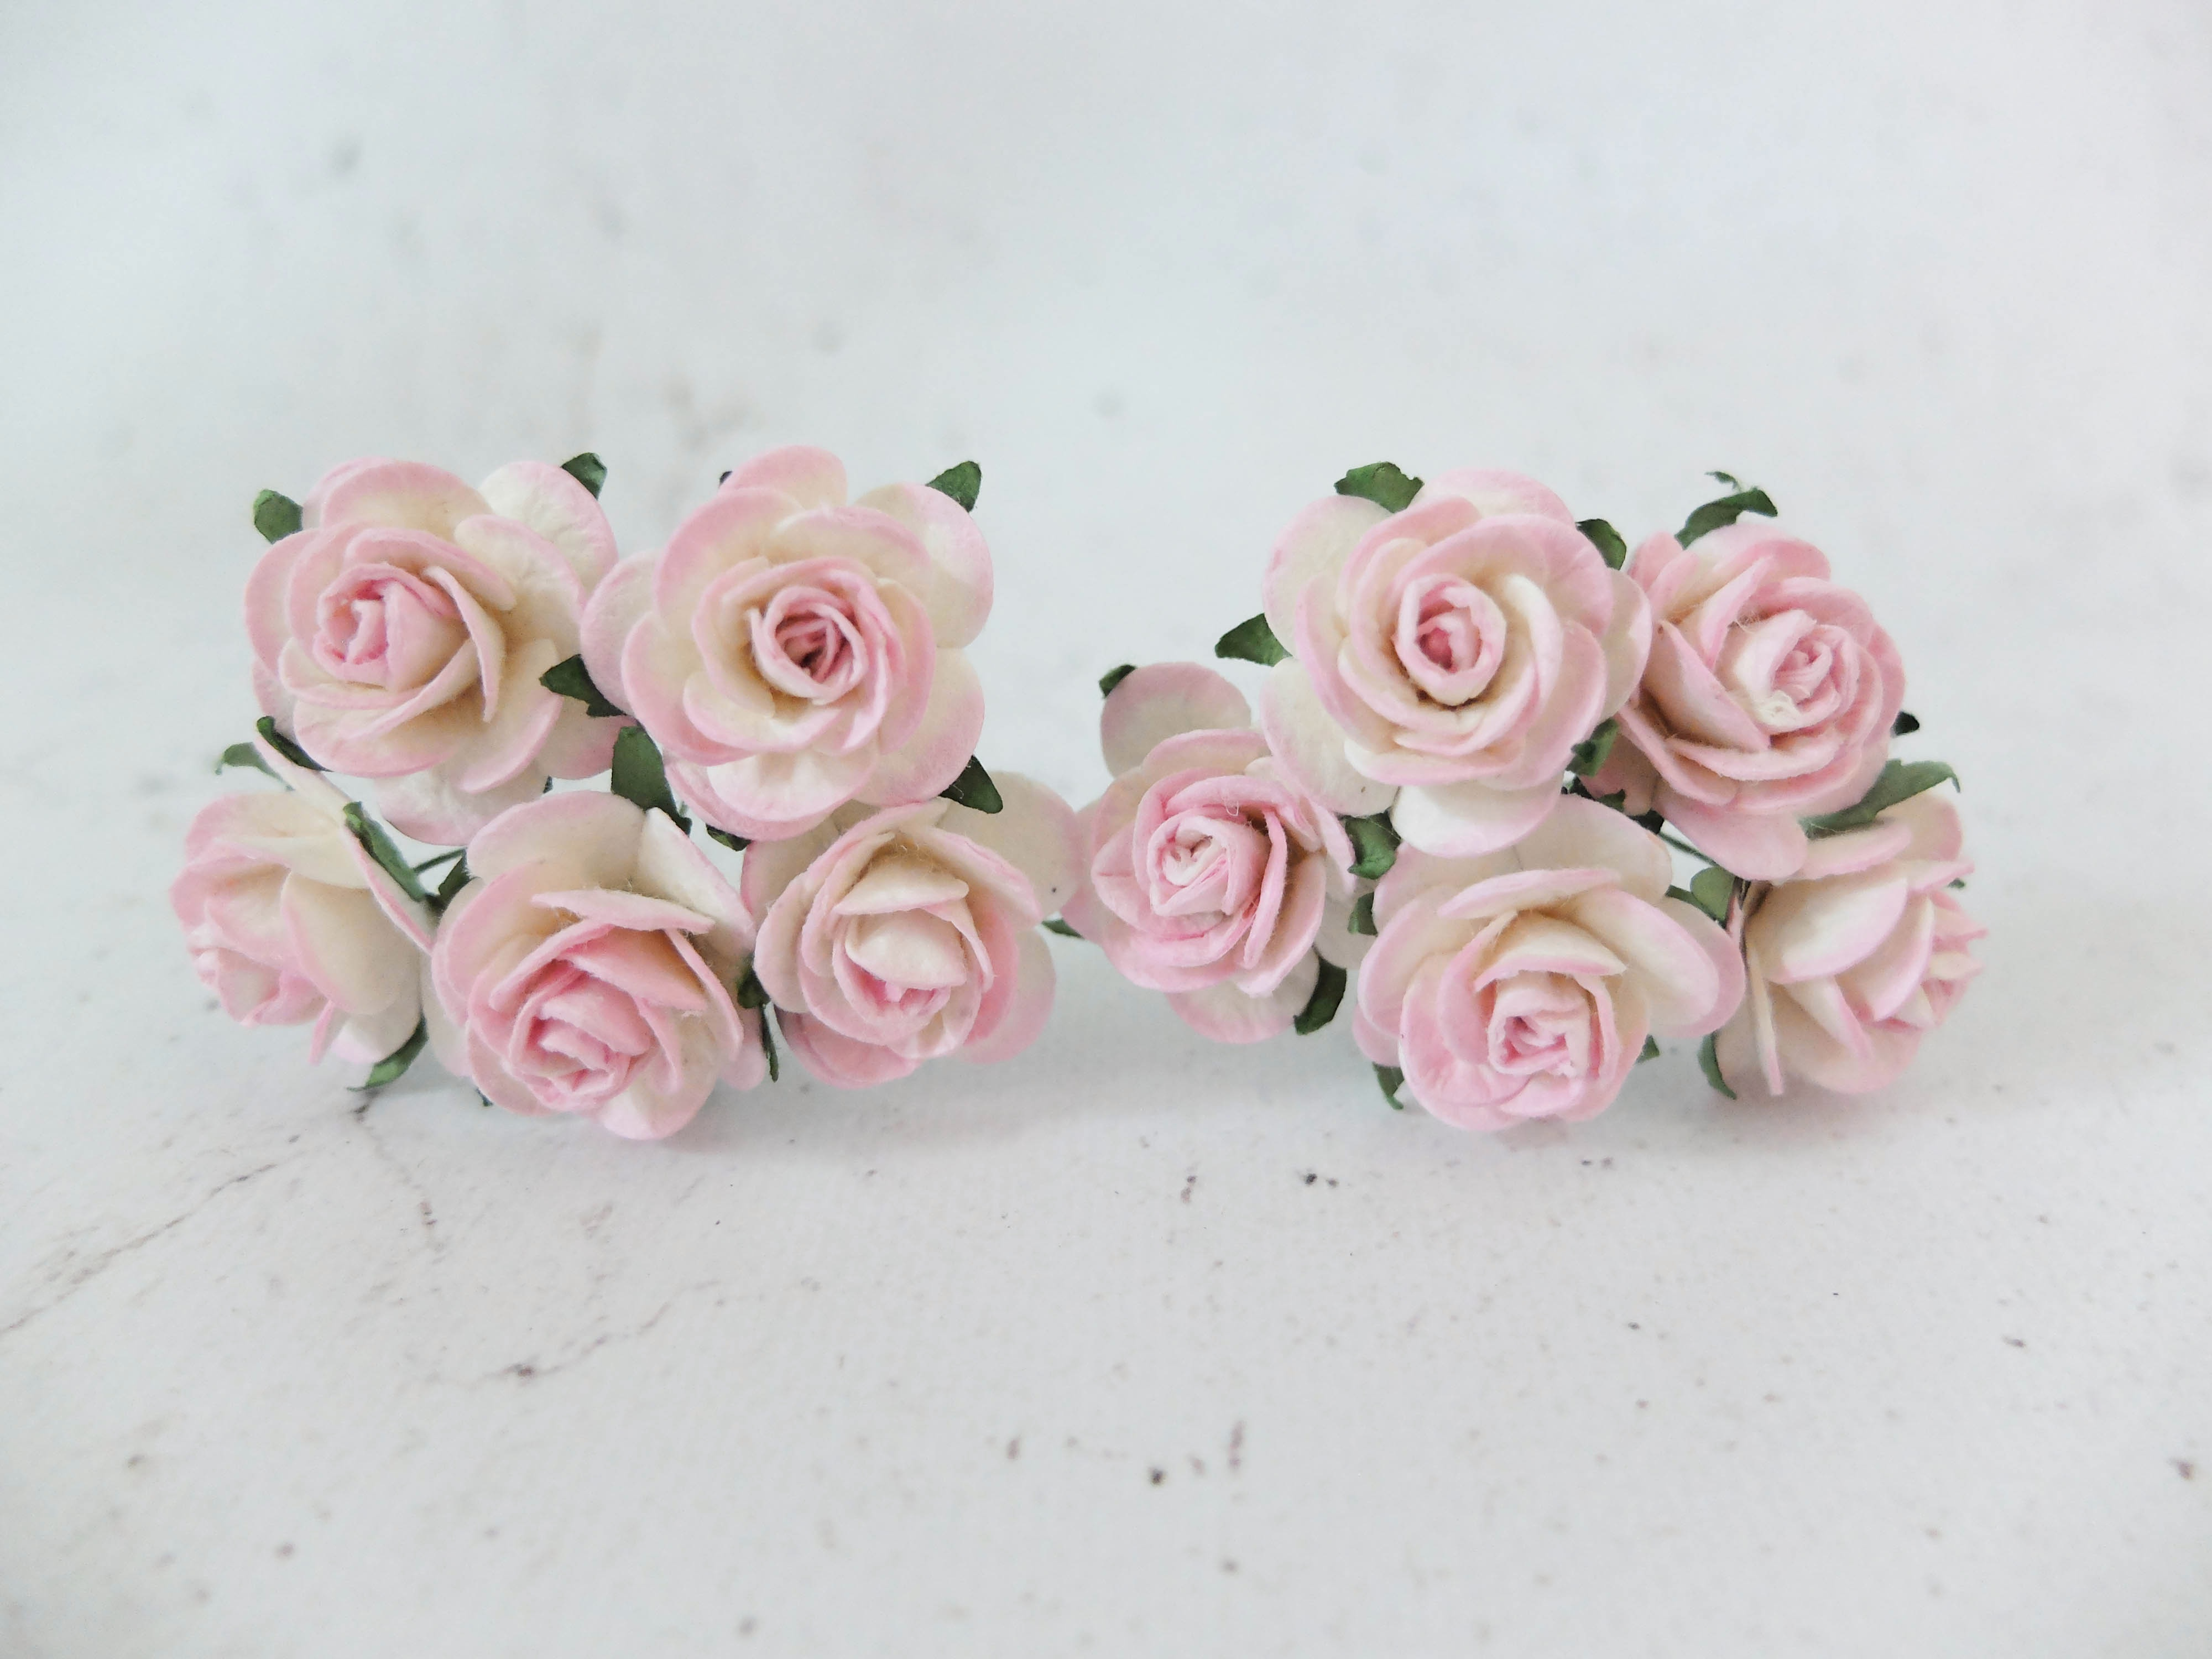 1 inch mulberry paper roses wholesale 50 pcspack 25mm paper roses 1 inch mulberry paper mightylinksfo